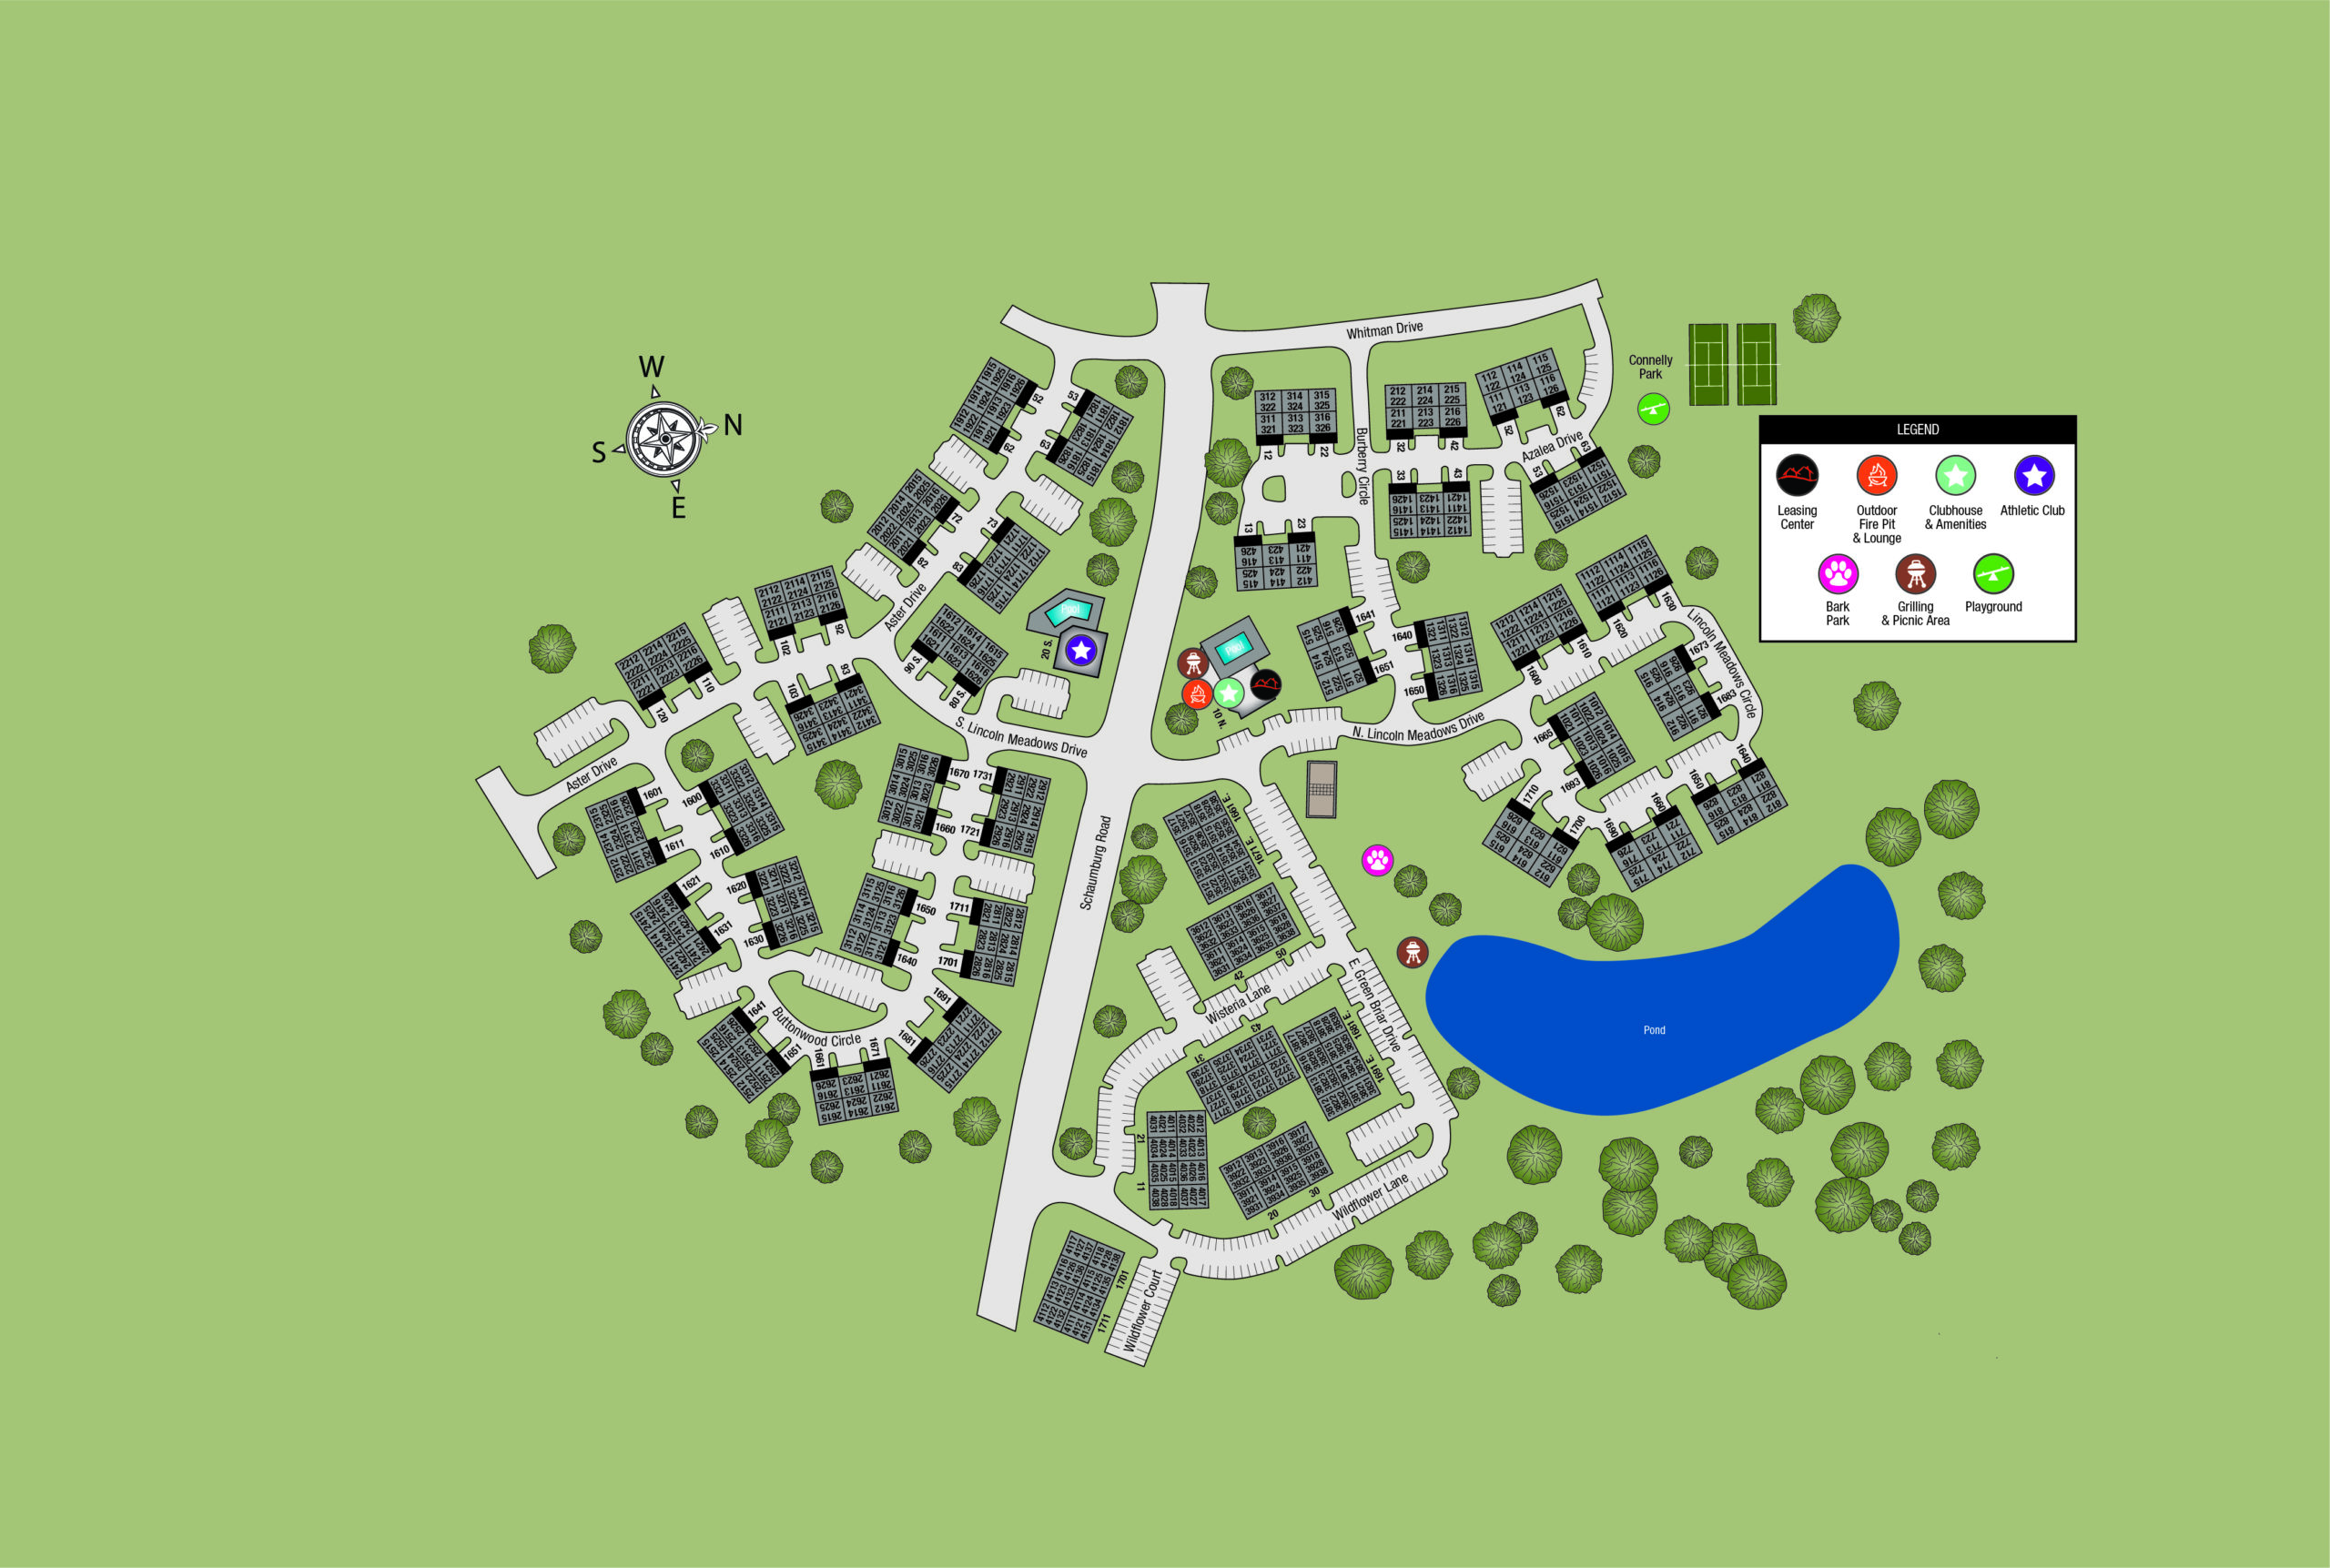 This image shows the map of TGM Meadow View Apartments in Columbus, OH